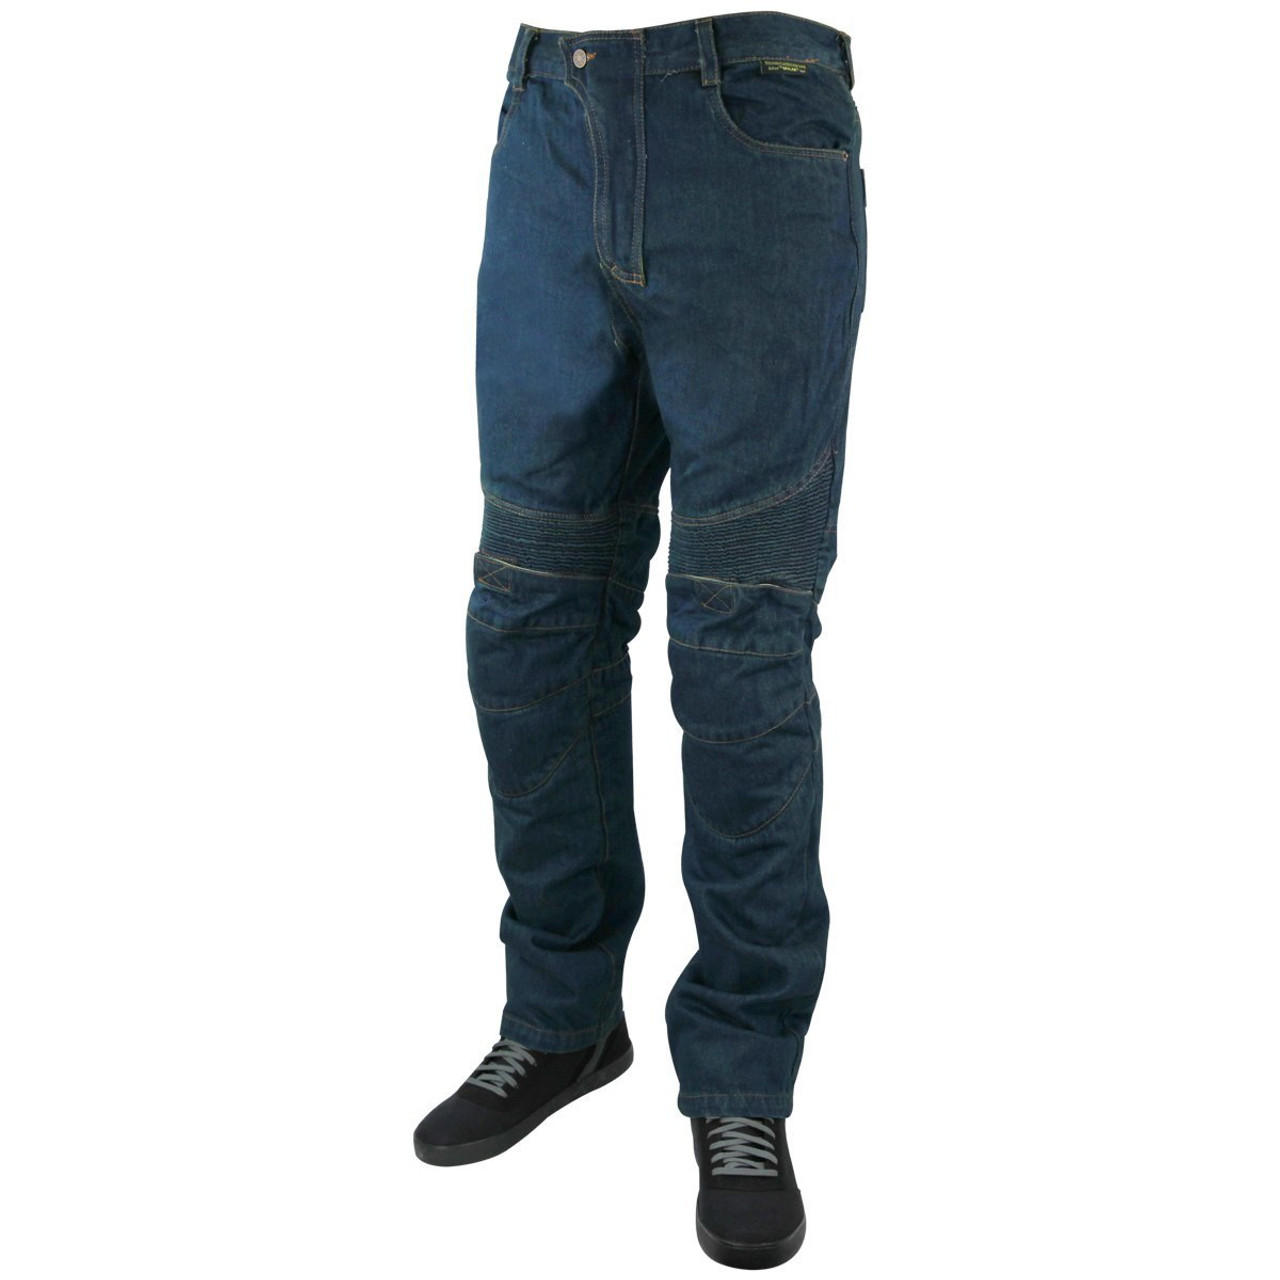 5f1c3a66 Mens Denim Motorcycle Pants with CE Armor and Kevlar - Team Motorcycle